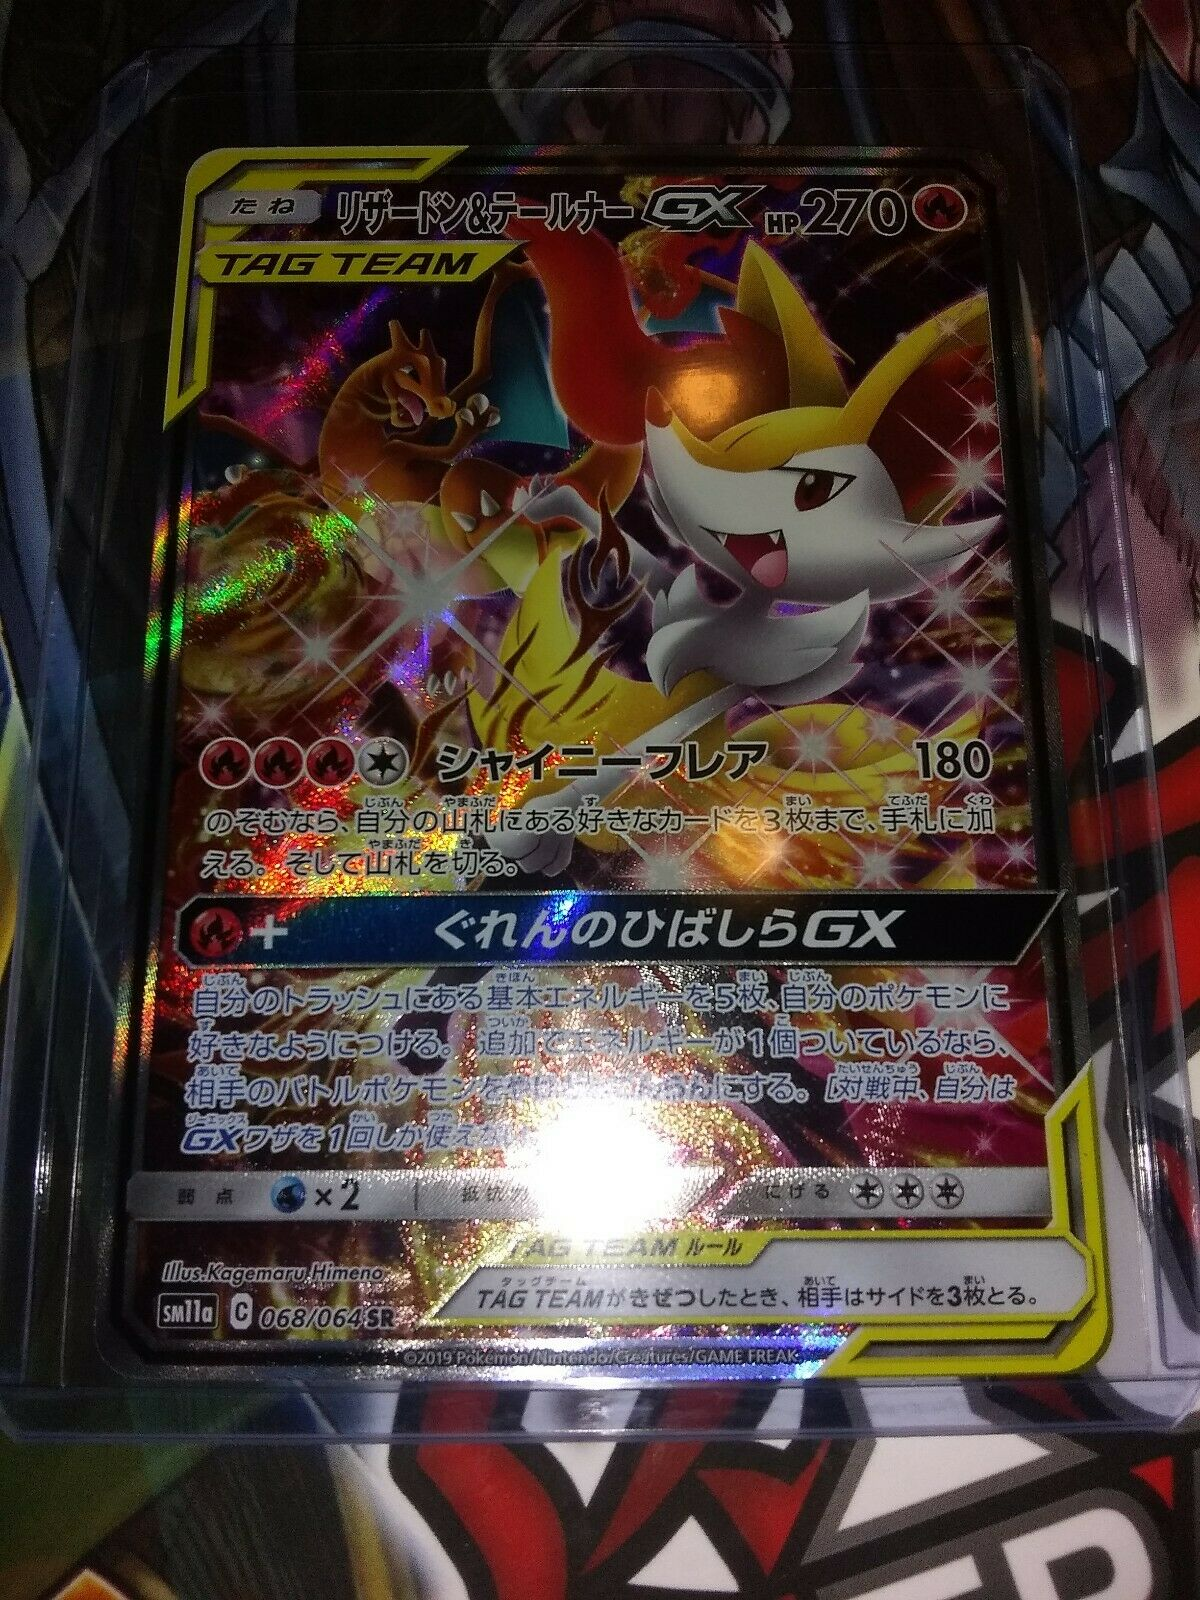 Japanese Charizard & Braixen GX 068 064 SM11a Tag Team Full Art Pokemon Card NM